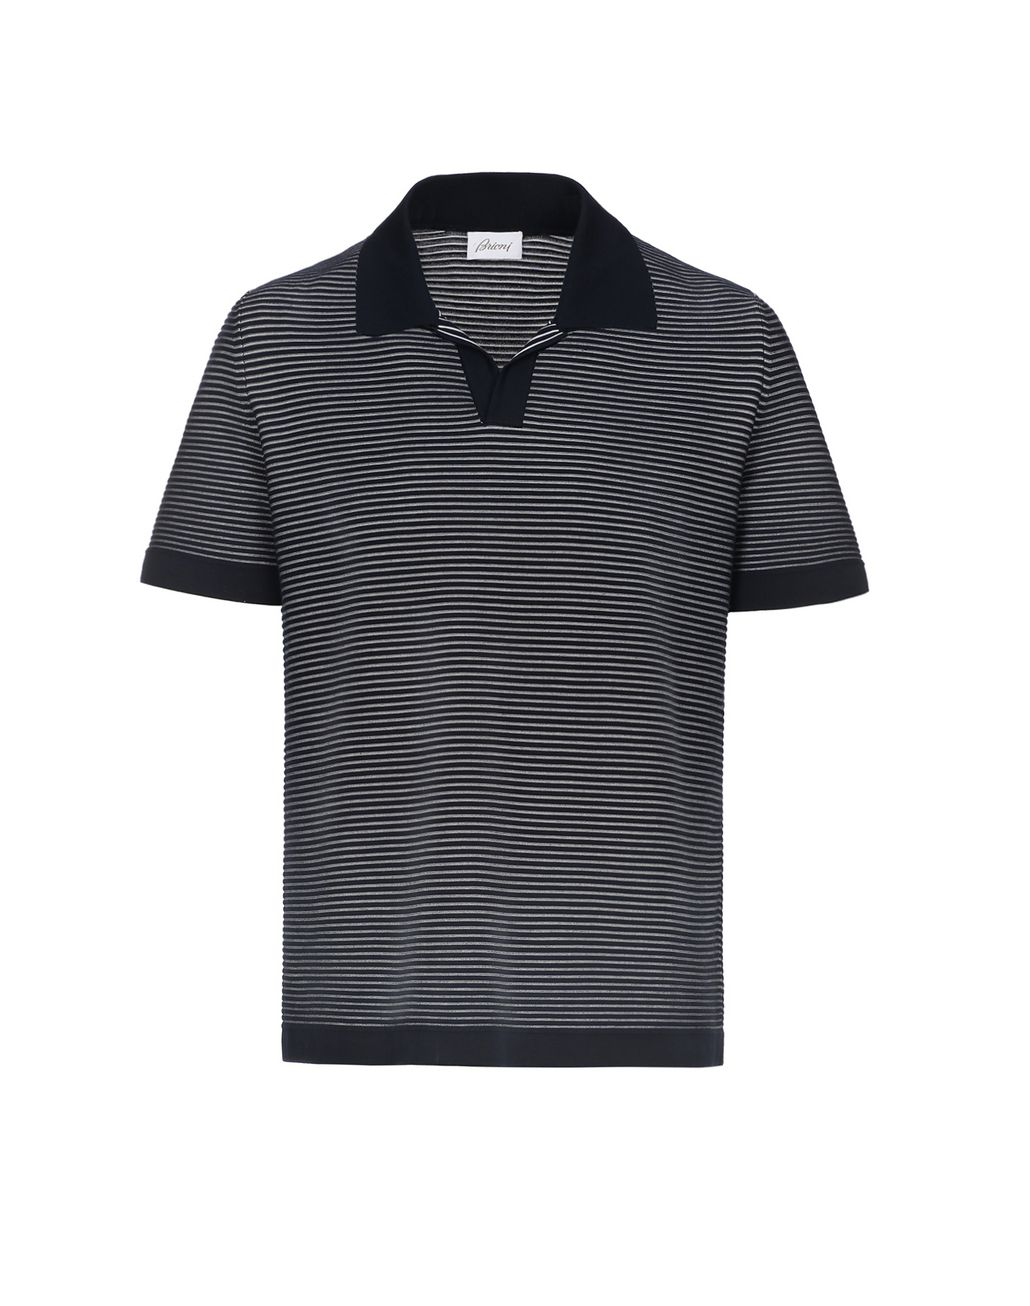 BRIONI Navy Blue and White Buttonless Striped Polo Shirt T-Shirts & Polos Man f